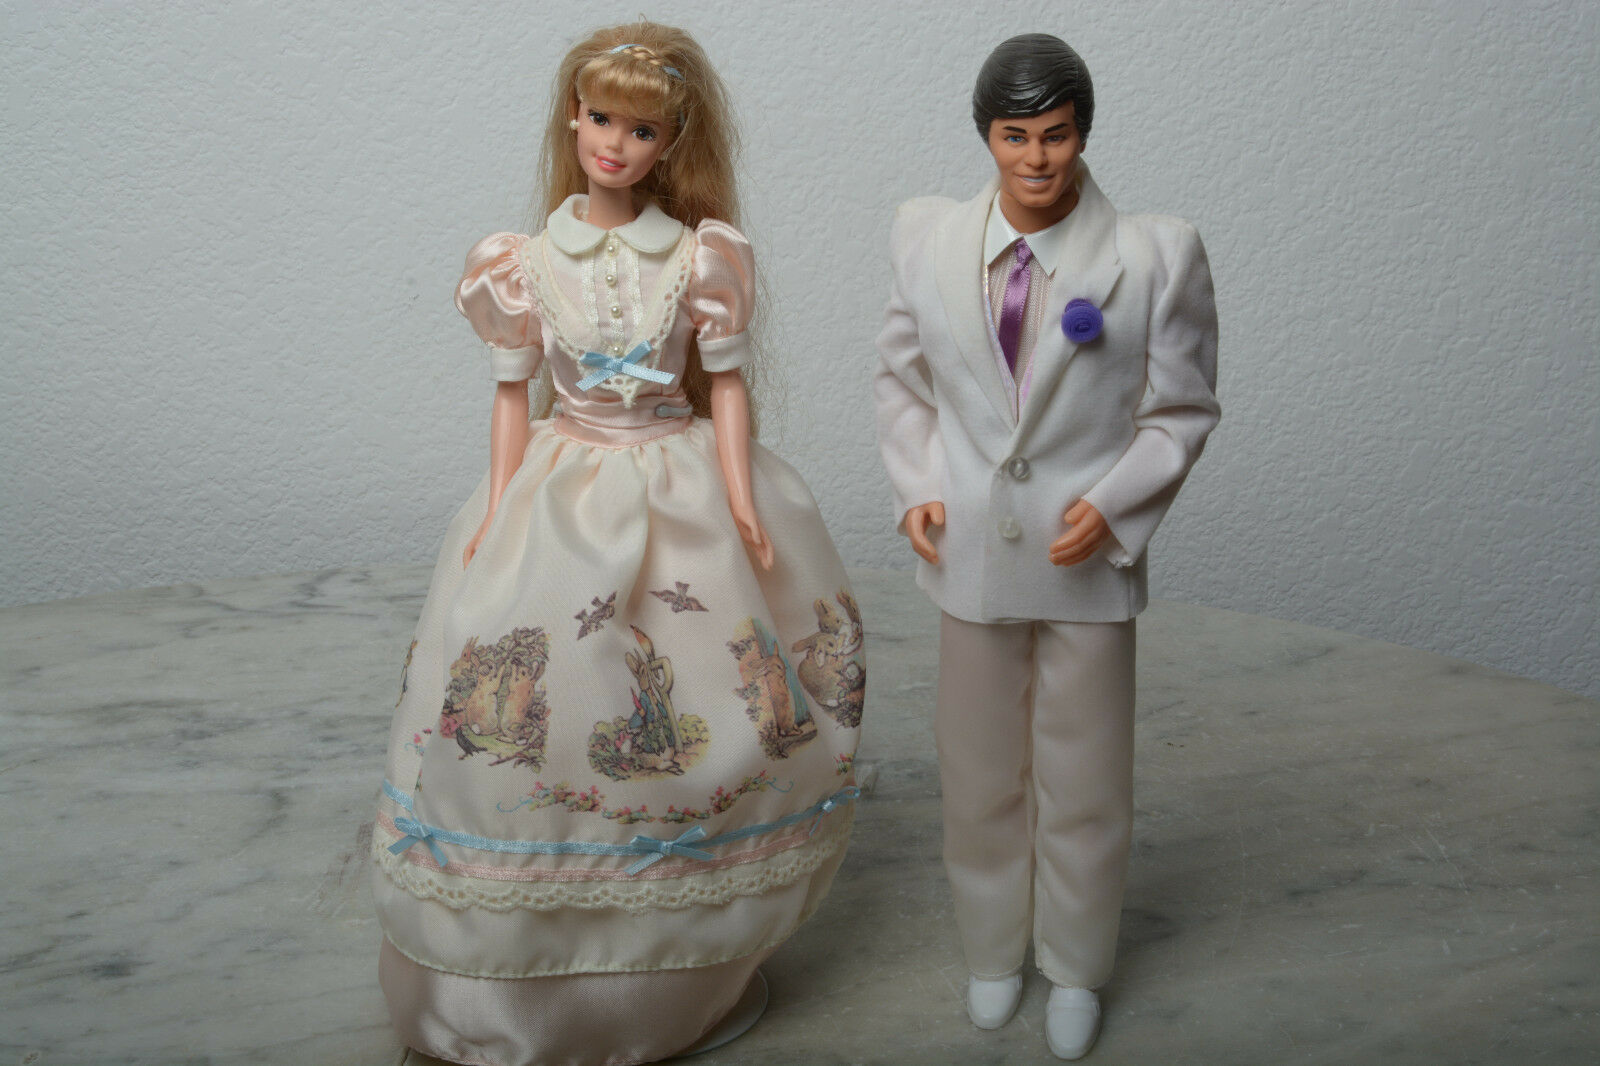 Mattel Ken And Peter Rabbit Barbie. Blemish on Ken's pants